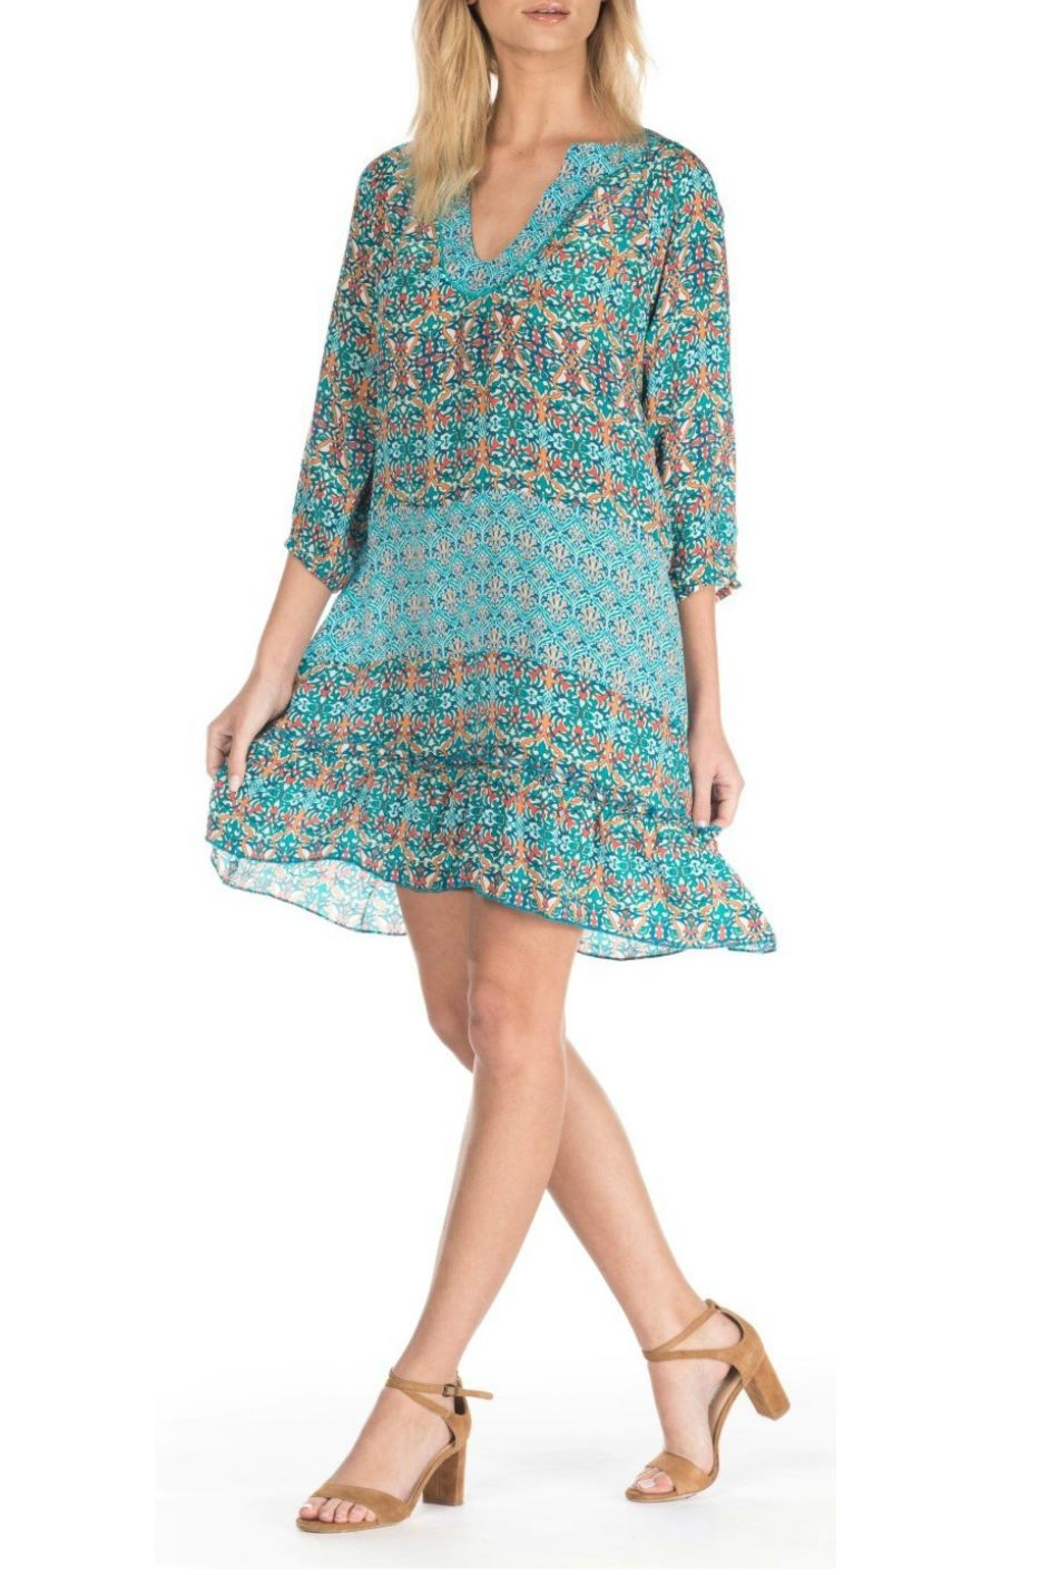 Tolani Dolly Turquoise Dress - Side Cropped Image